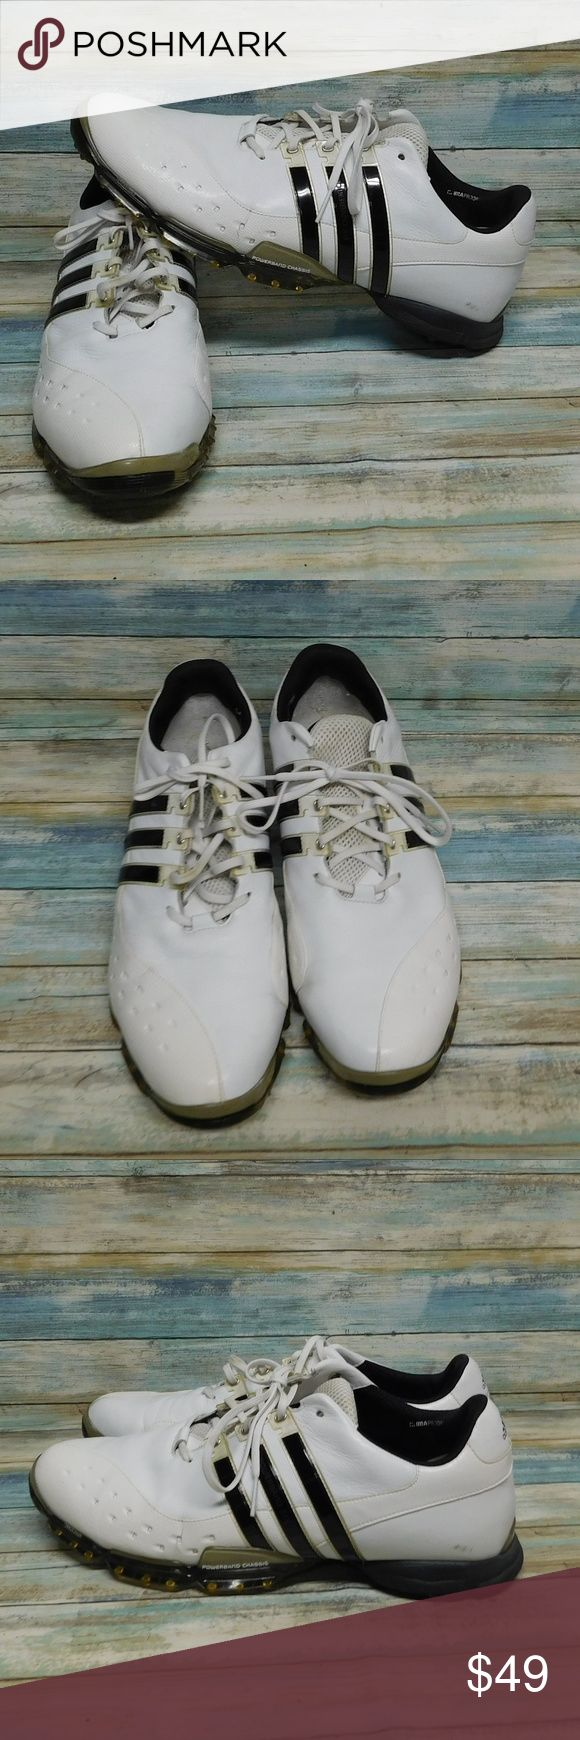 Adidas Clima Proof Power Band 3.0 Men's Golf Shoes Adidas Clima Proof Power Band 3.0 Men's Golf Shoes  size 15  in very good condition  just needs insoles adidas Shoes Athletic Shoes